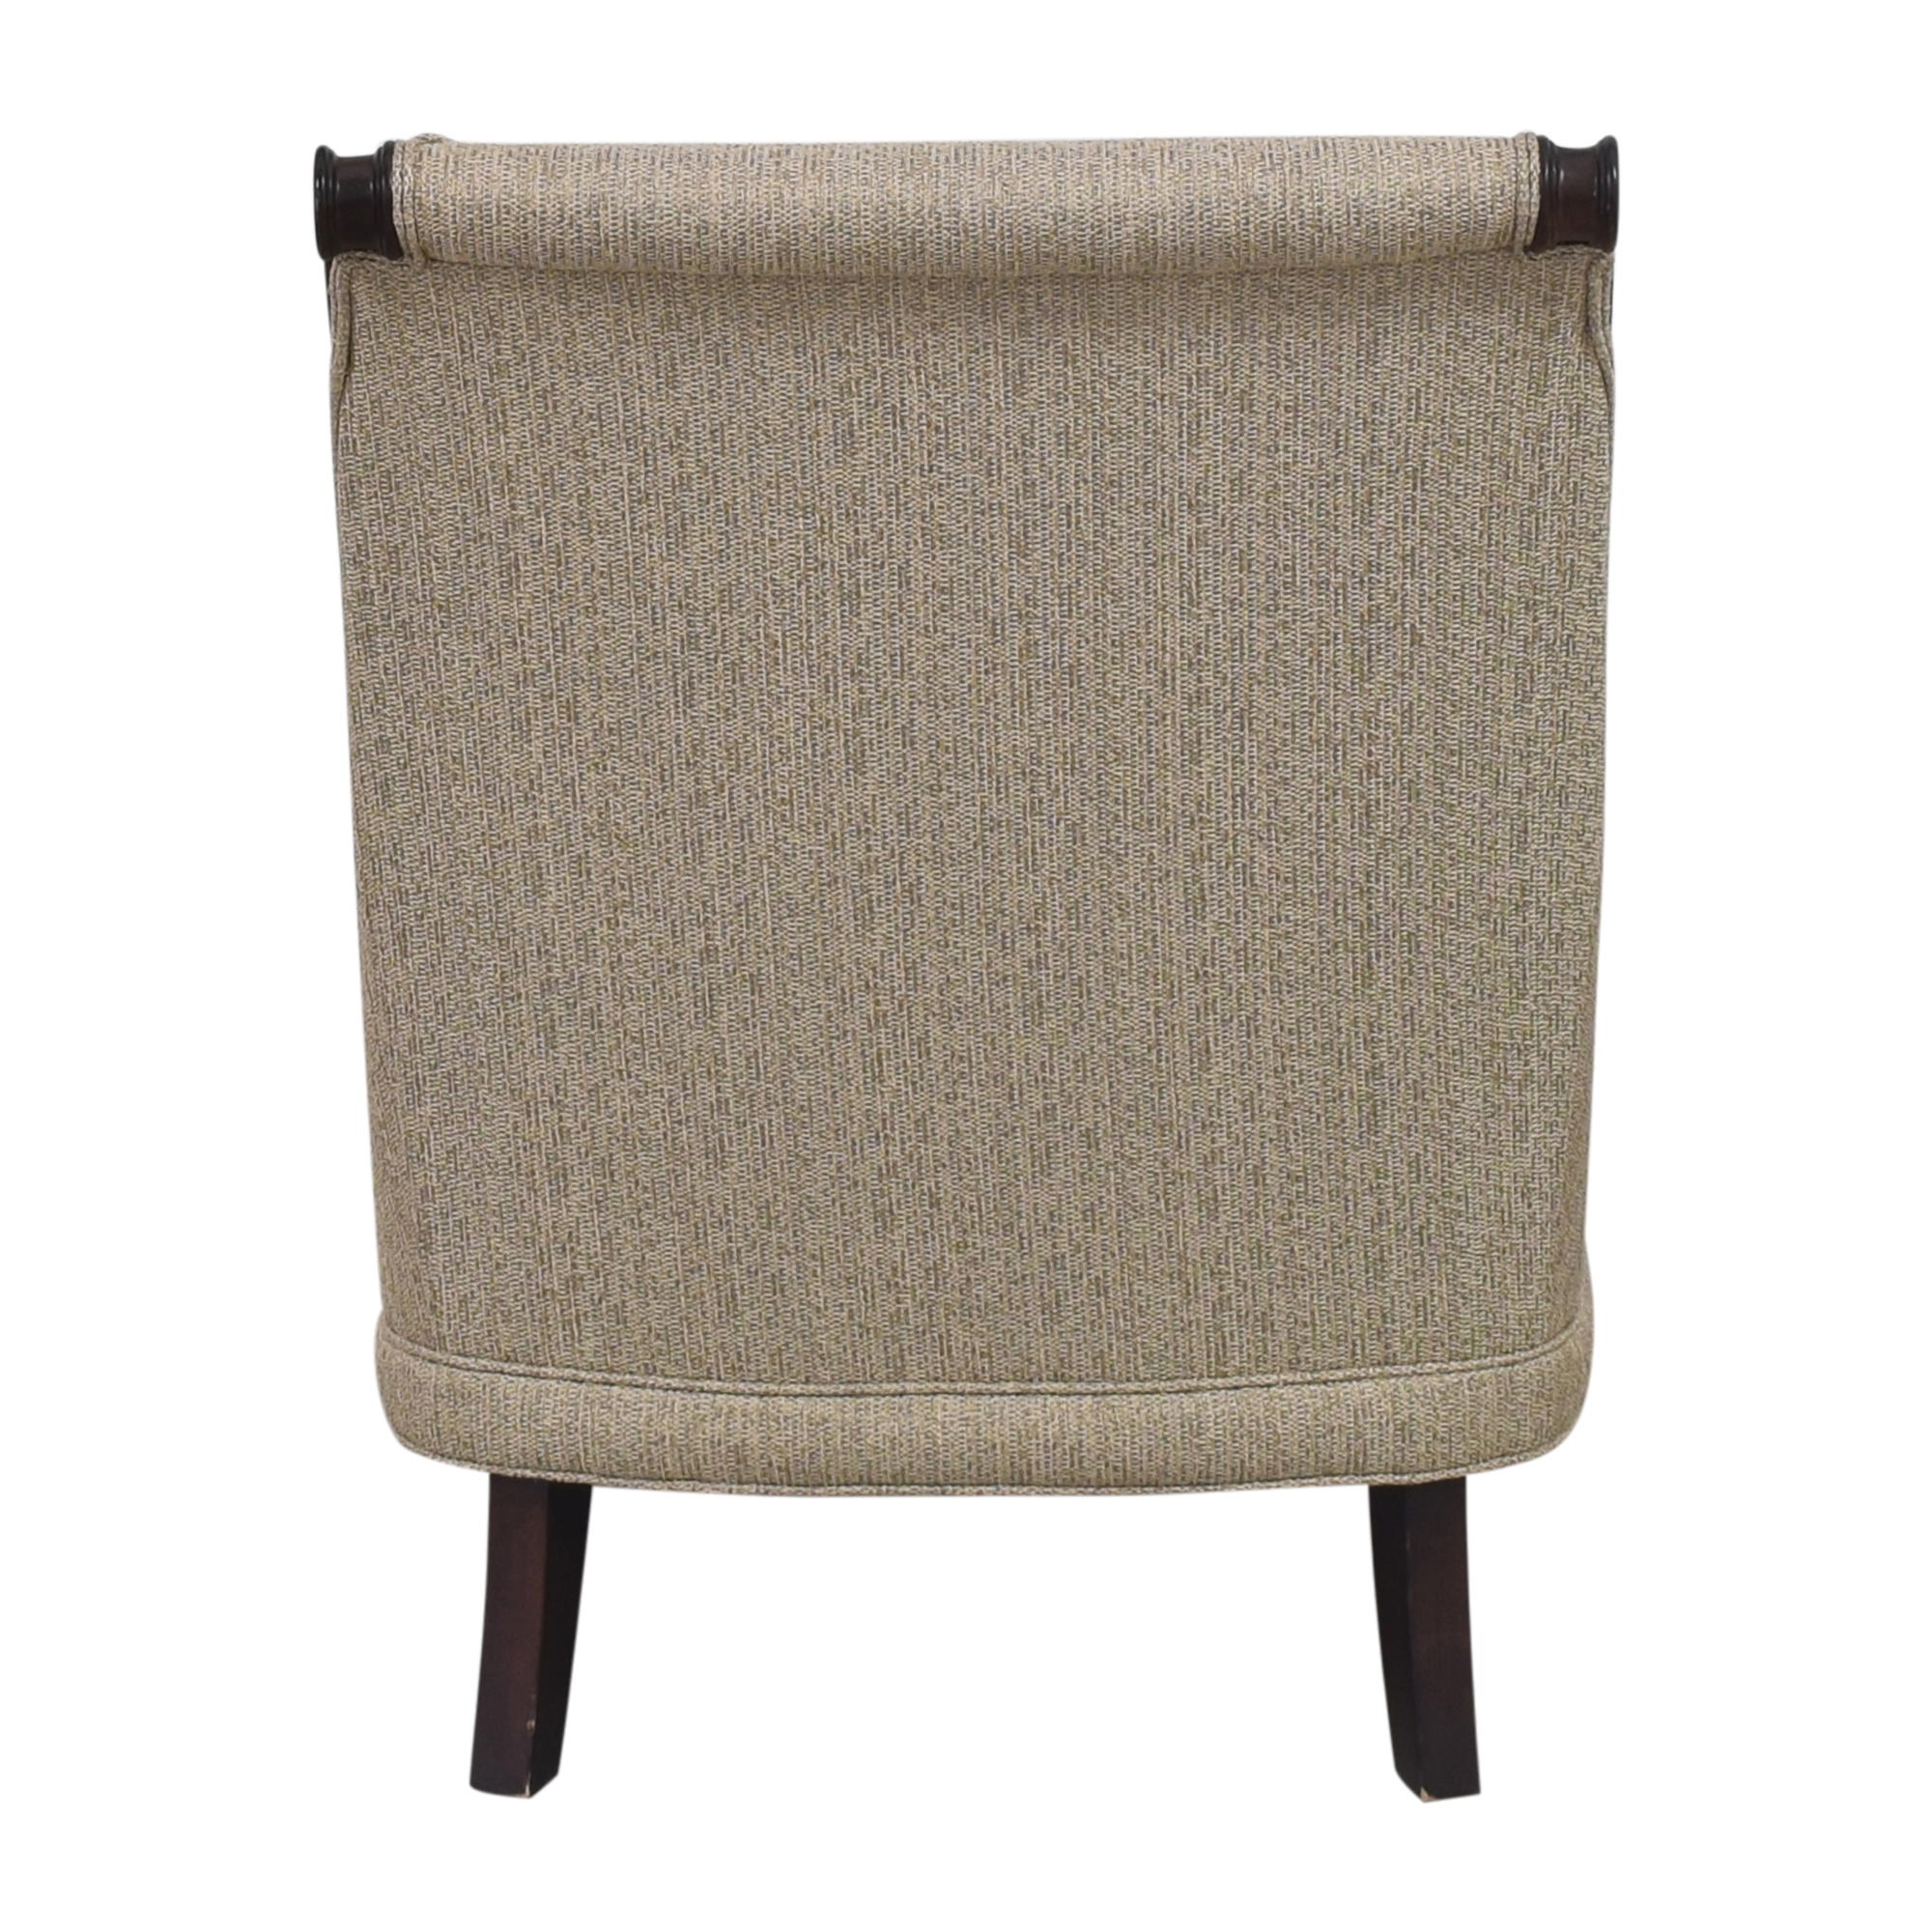 Drexel Heritage Basilia Chair / Accent Chairs